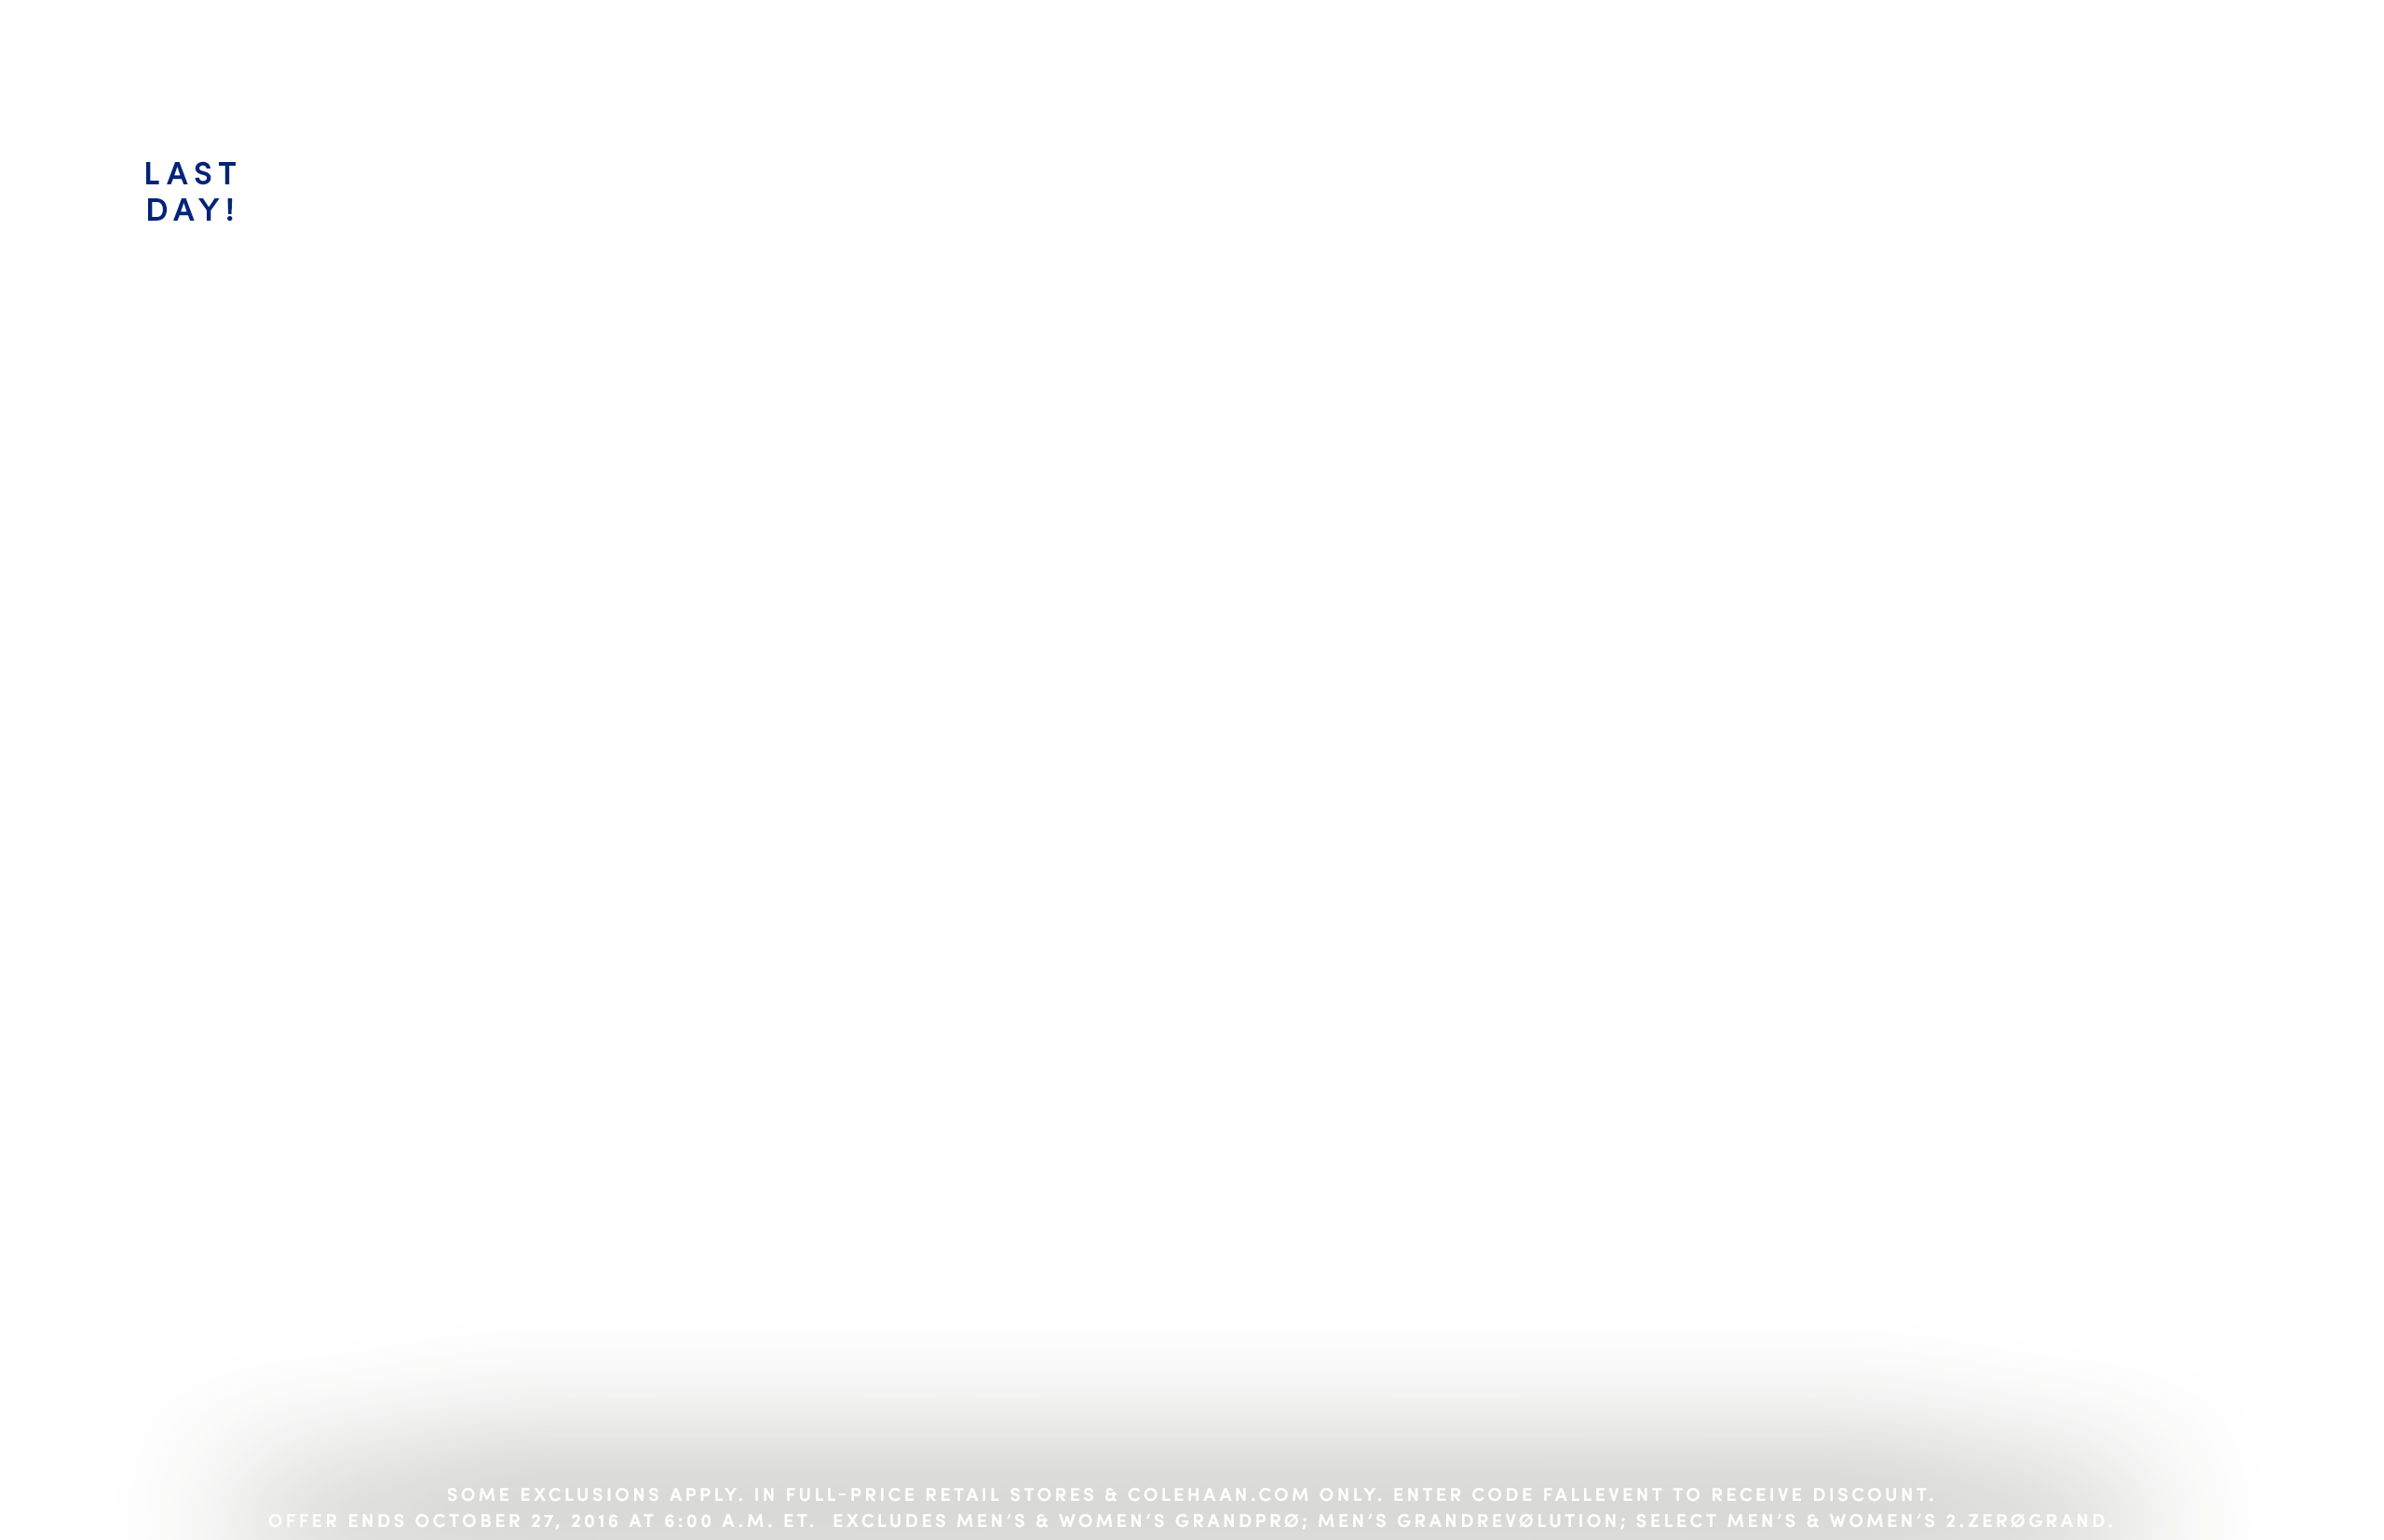 SEMI-ANNUAL EVENT - 30% OFF